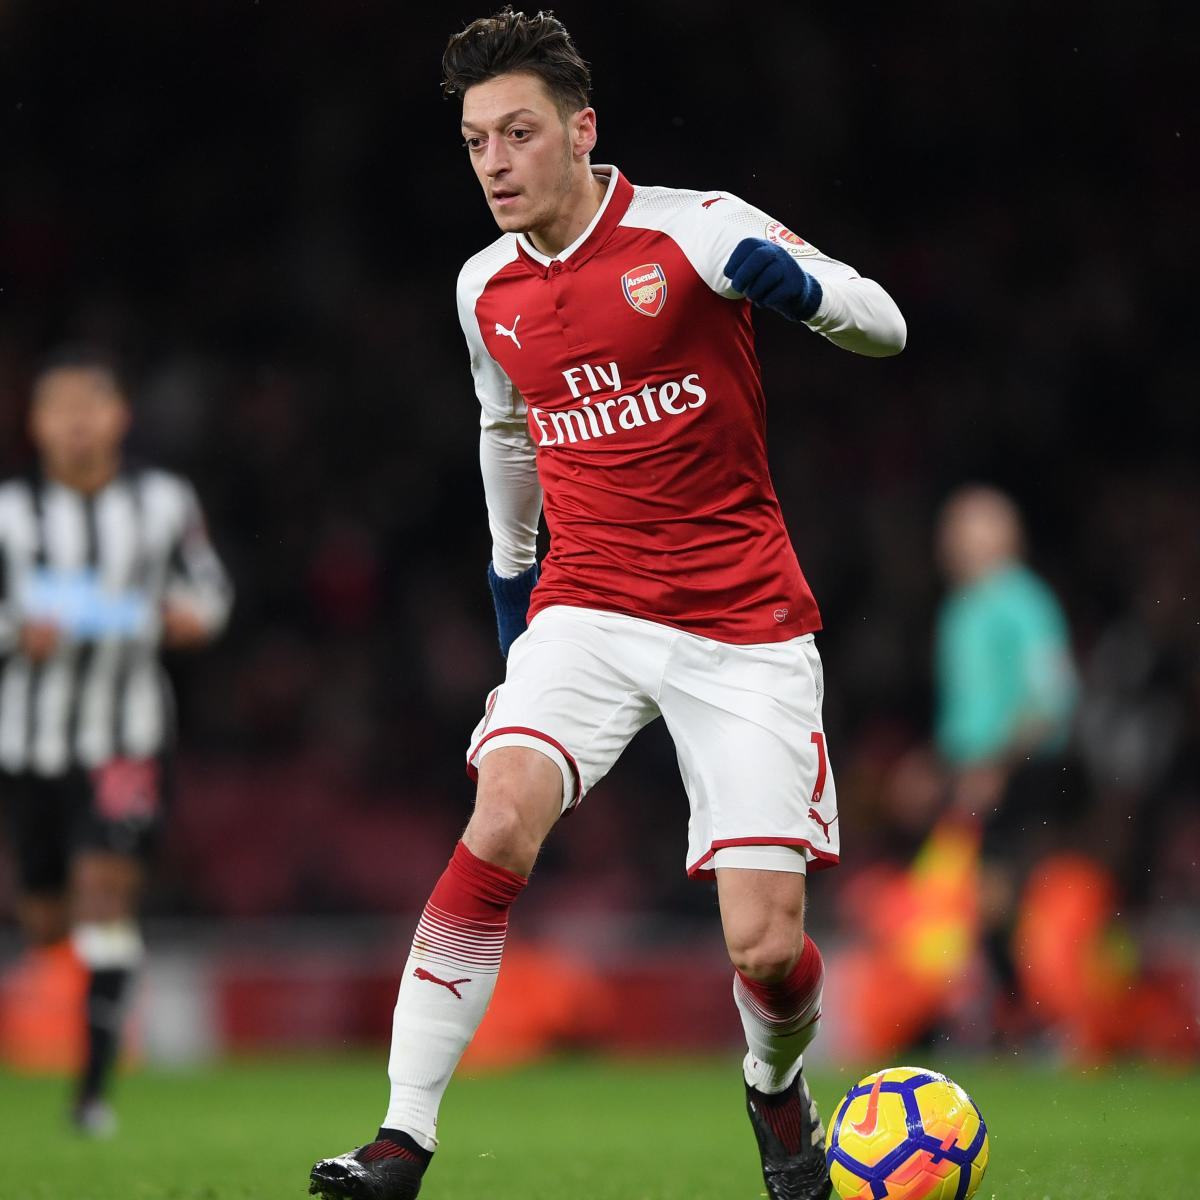 Manchester United Transfer News Latest Rumours On Lucas: Manchester United Transfer News: Latest Mesut Ozil Rumours